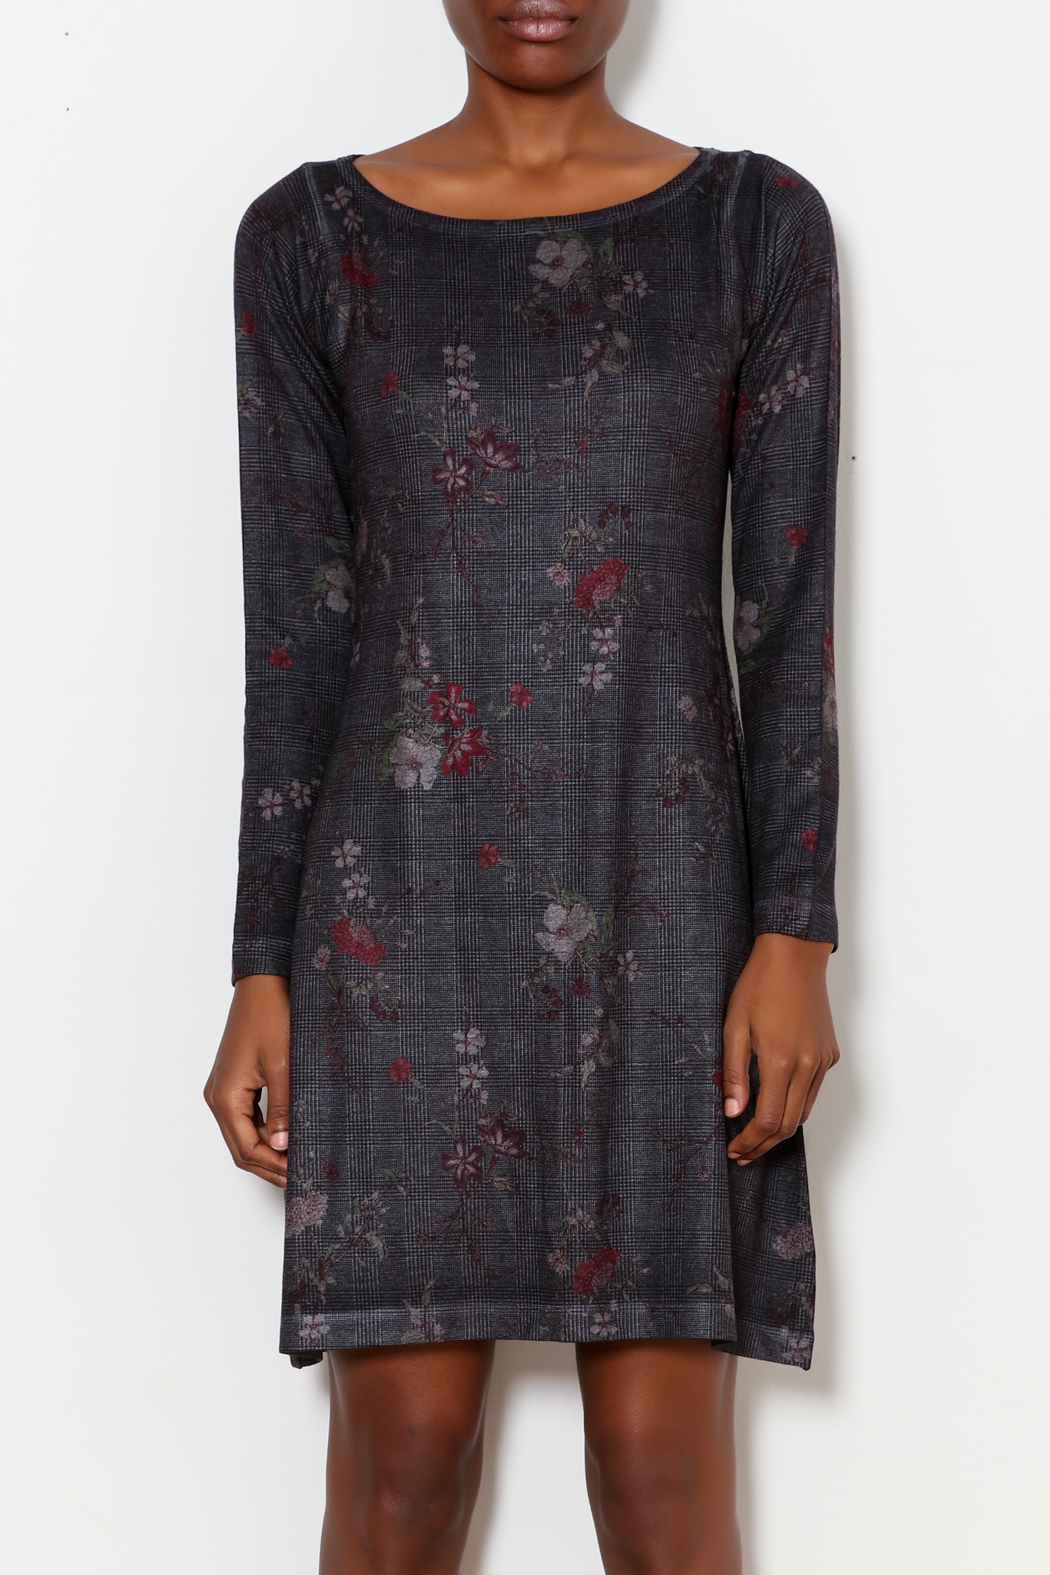 Nally & Millie Houndstooth Floral Print Dress - Side Cropped Image